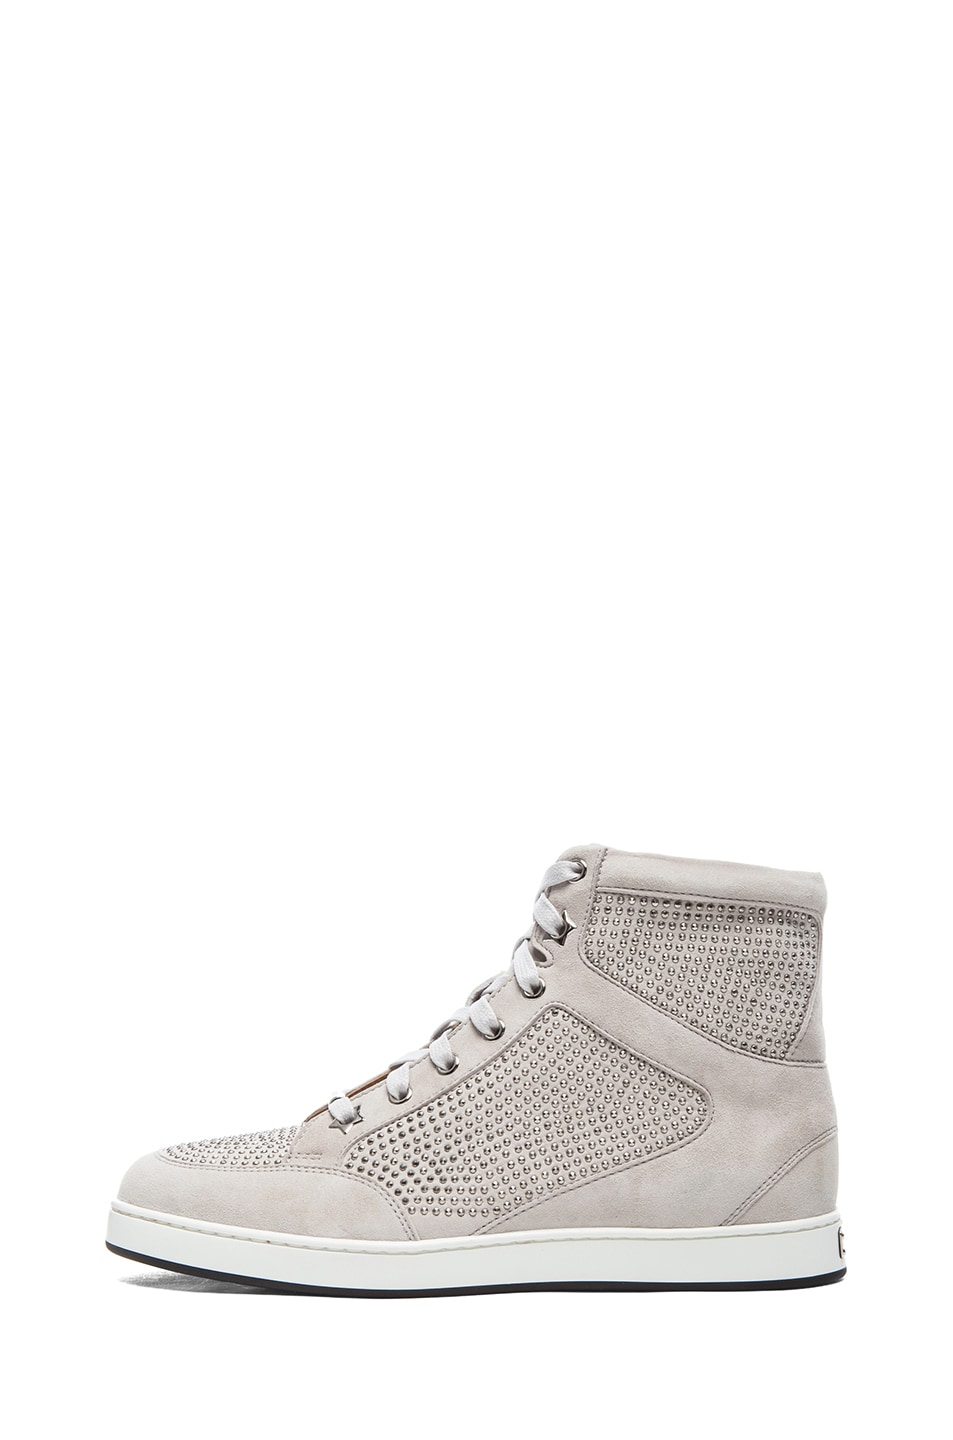 Image 1 of Jimmy Choo Tokyo High Top Suede Trainers in Silver